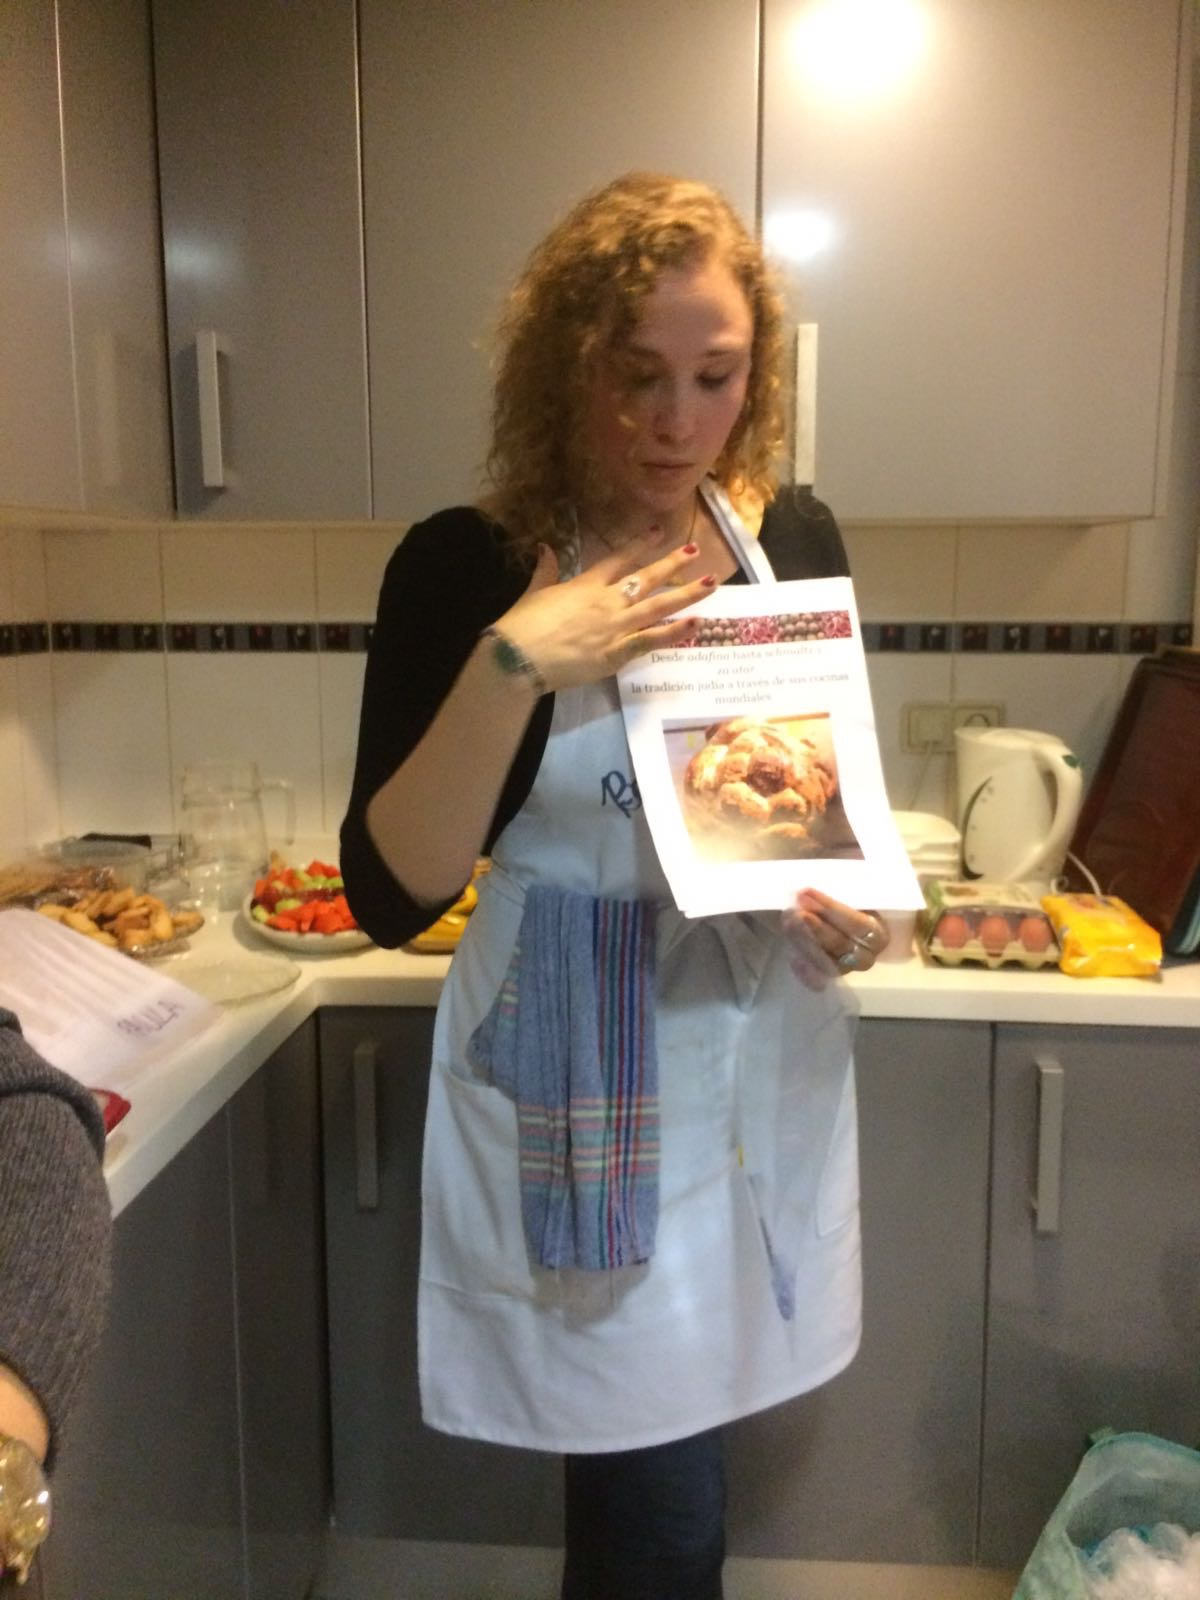 Teaching the course for the Madrid Reform Community in my very own Boka Dulse apron.